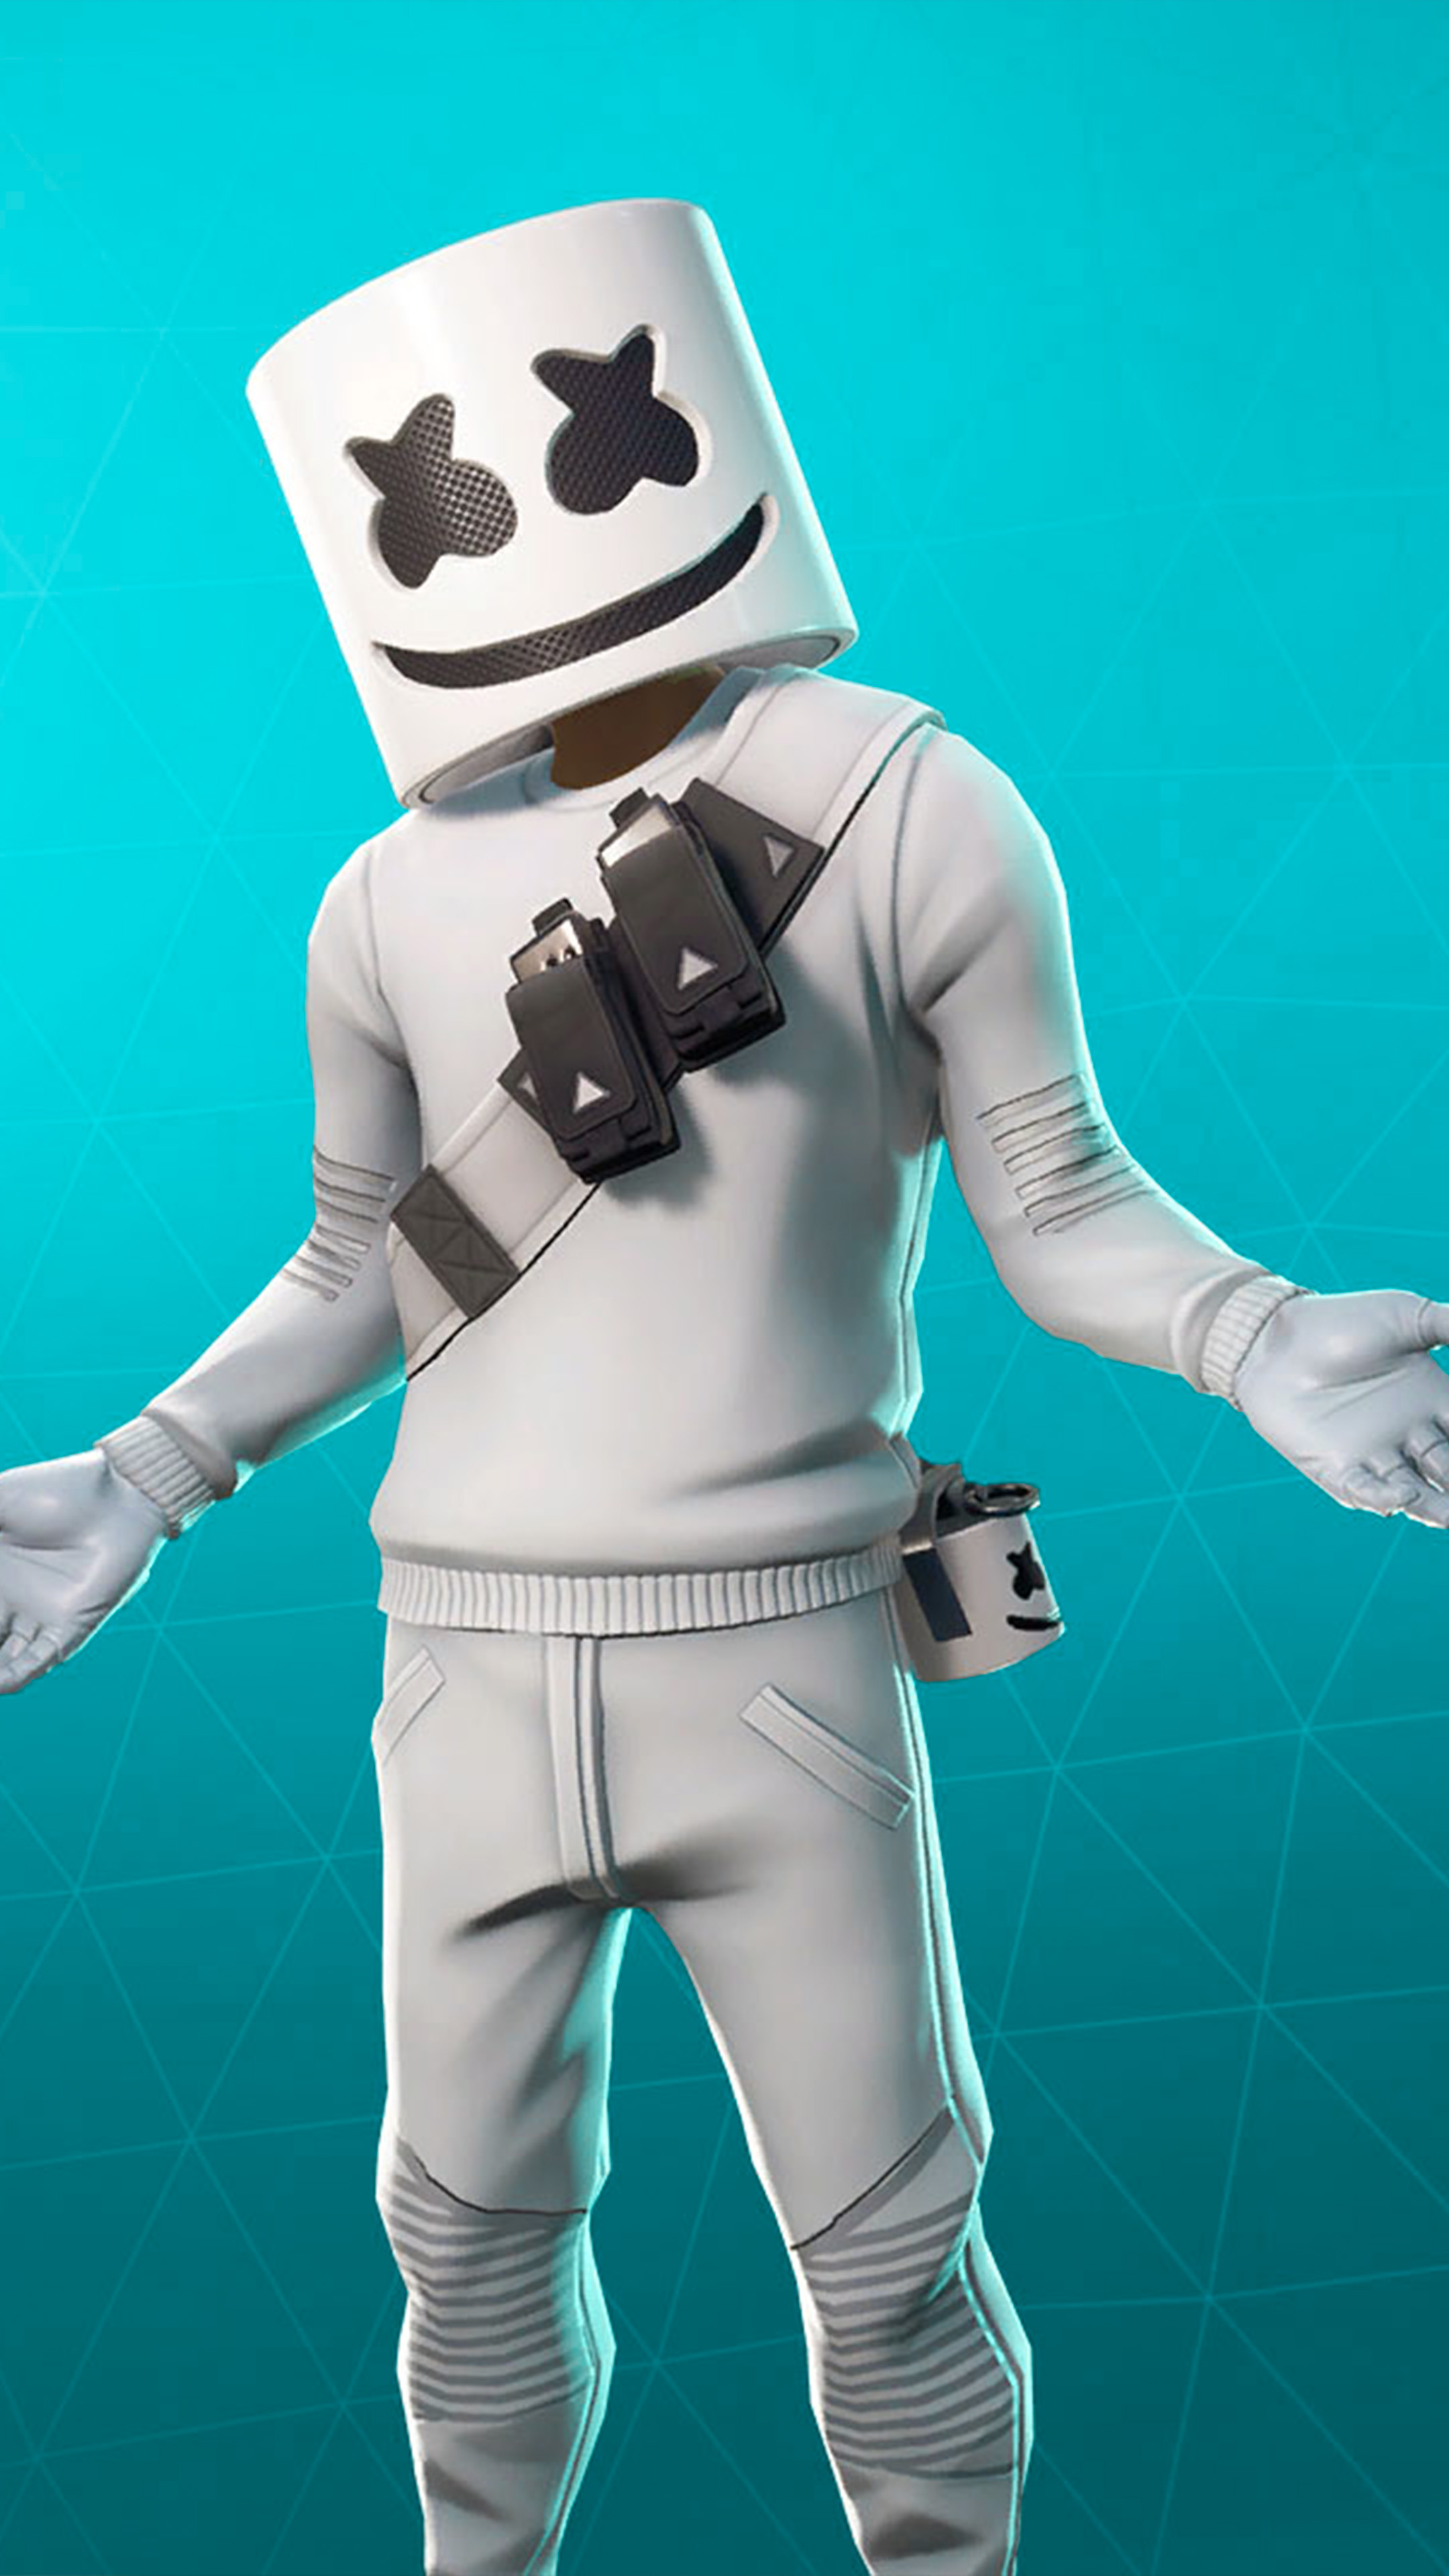 Marshmello Fortnite Skin 4k Ultra Hd Mobile Wallpaper